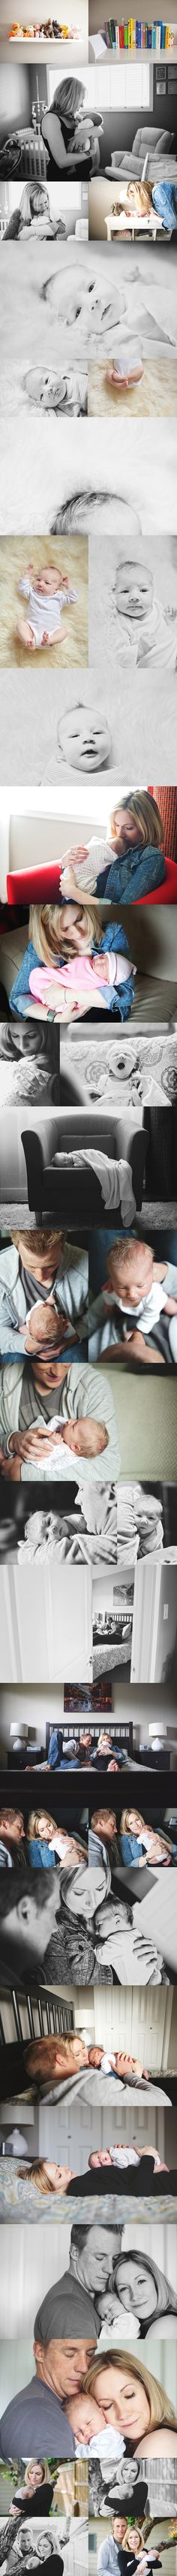 hadley // lifestyle newborn photography // calgary newborn photographers